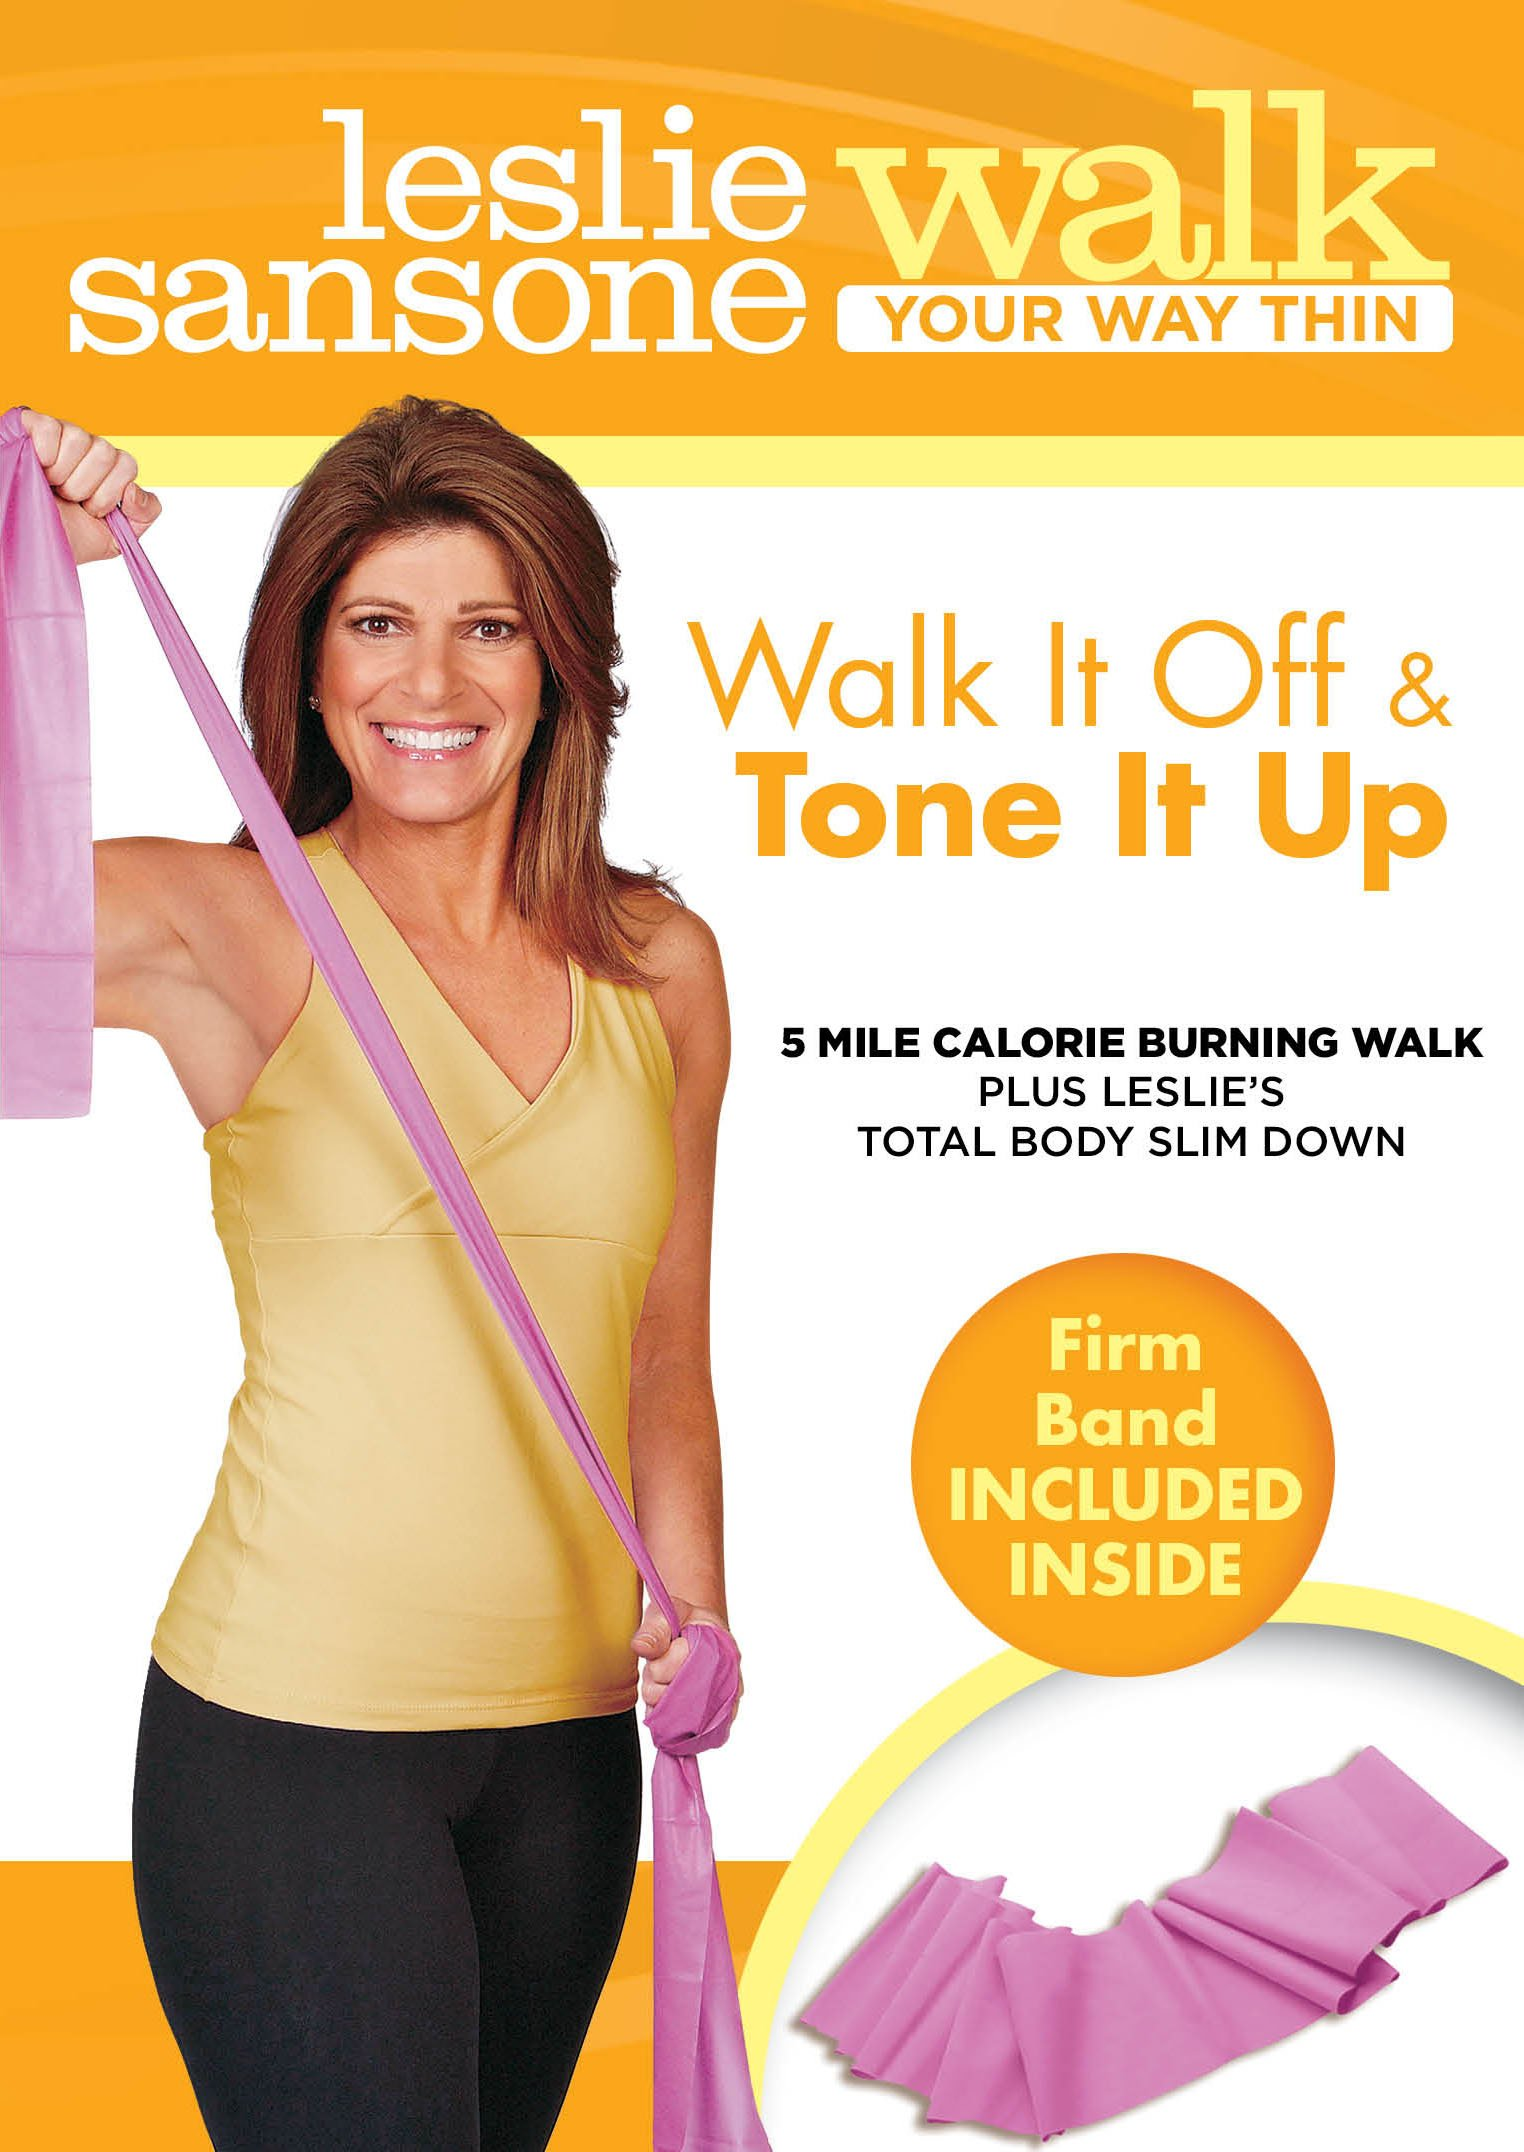 Leslie Sansone: Walk It Off & Tone It Up by Anchor Bay Entertainment